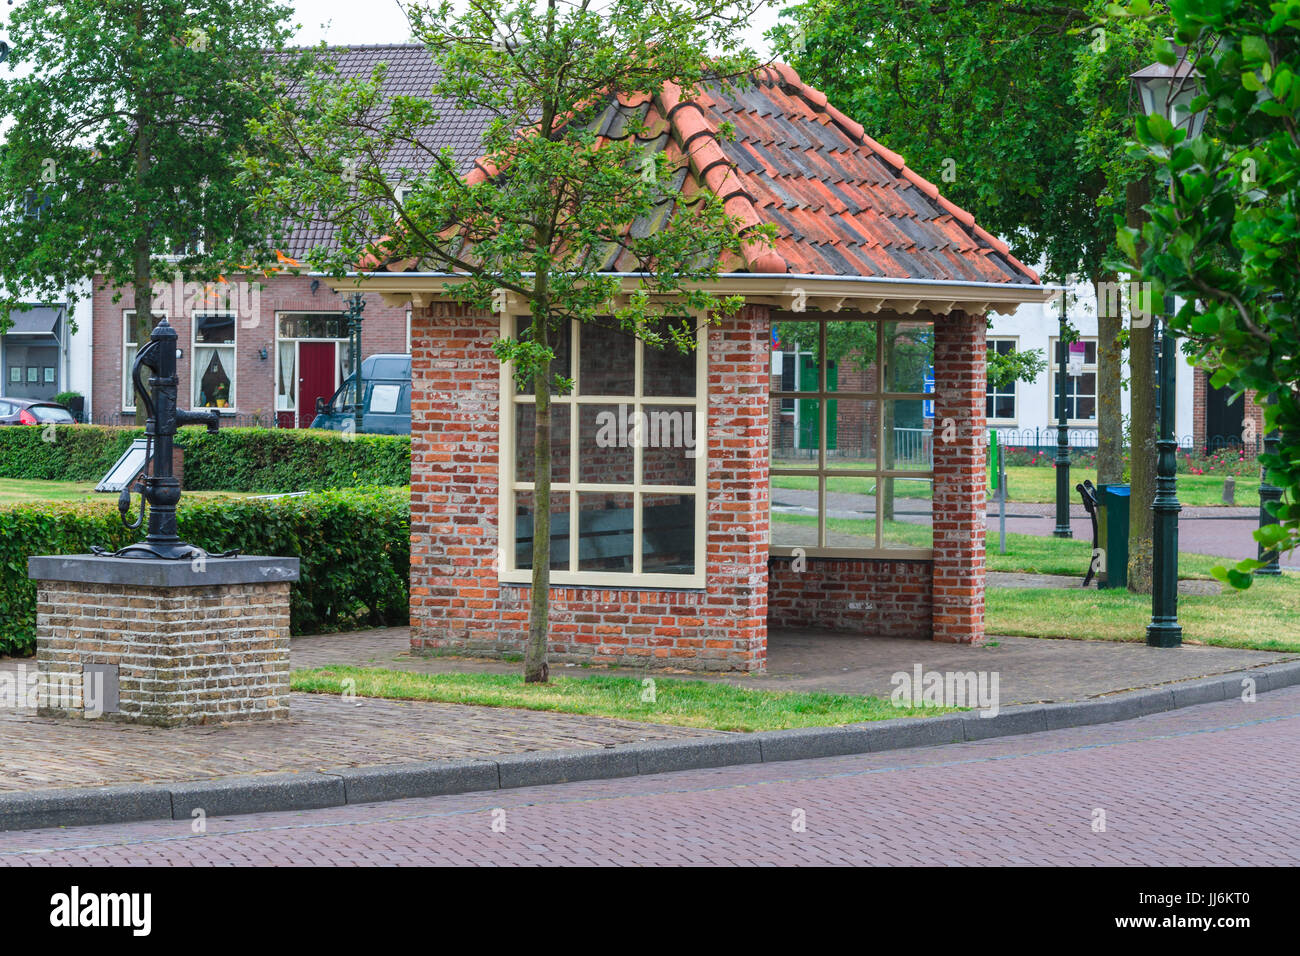 Bus stop of brickstone and old water pump in the Netherlands Renesse. - Stock Image